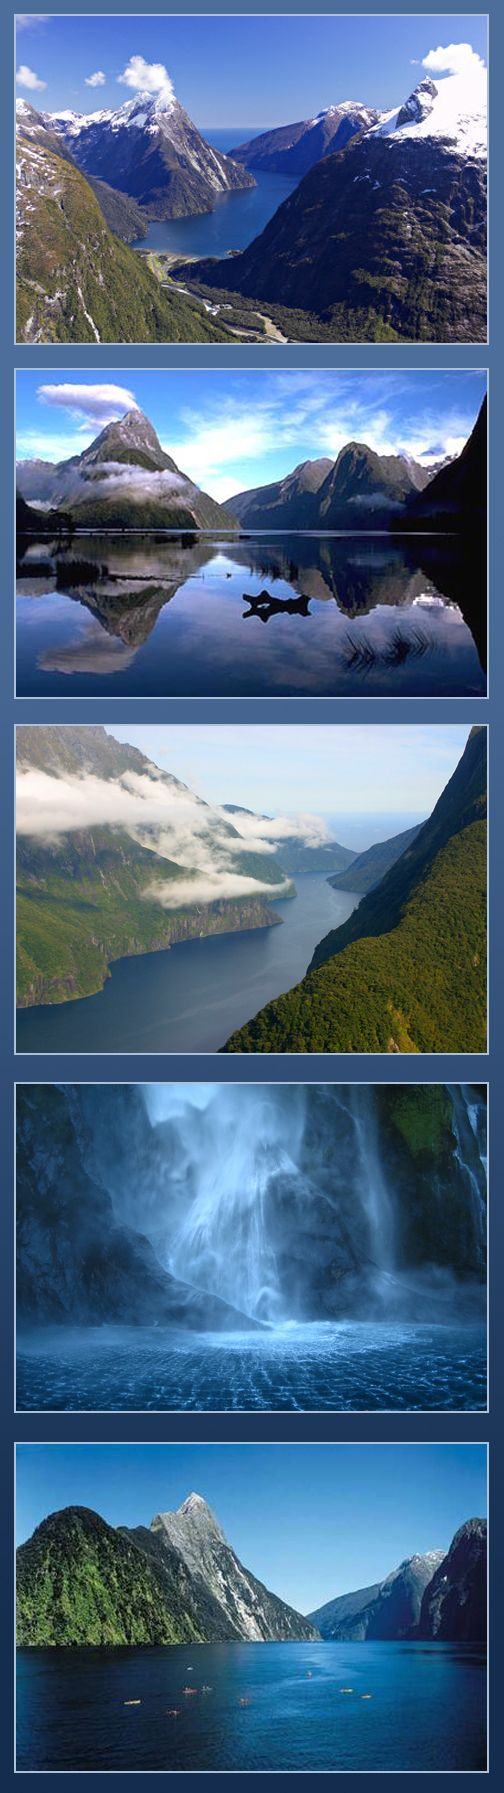 "Milford Sound, New Zeland - Milford Sound or ""Piopiotahi"" in Maori is a deep, icy waterway running 15km inland from the Tasman Sea and is part of the Fiordland National Park in New Zealand. The name ""Piopiotahi"" which means place of singing thrush comes from a Maori legend. This majestic landscape of spectacular beauty and natural grandeur is surrounded by sheer rock walls and sports two permanent waterfalls, Lady Bowen Falls and Stirling Falls #monogramsvacation"